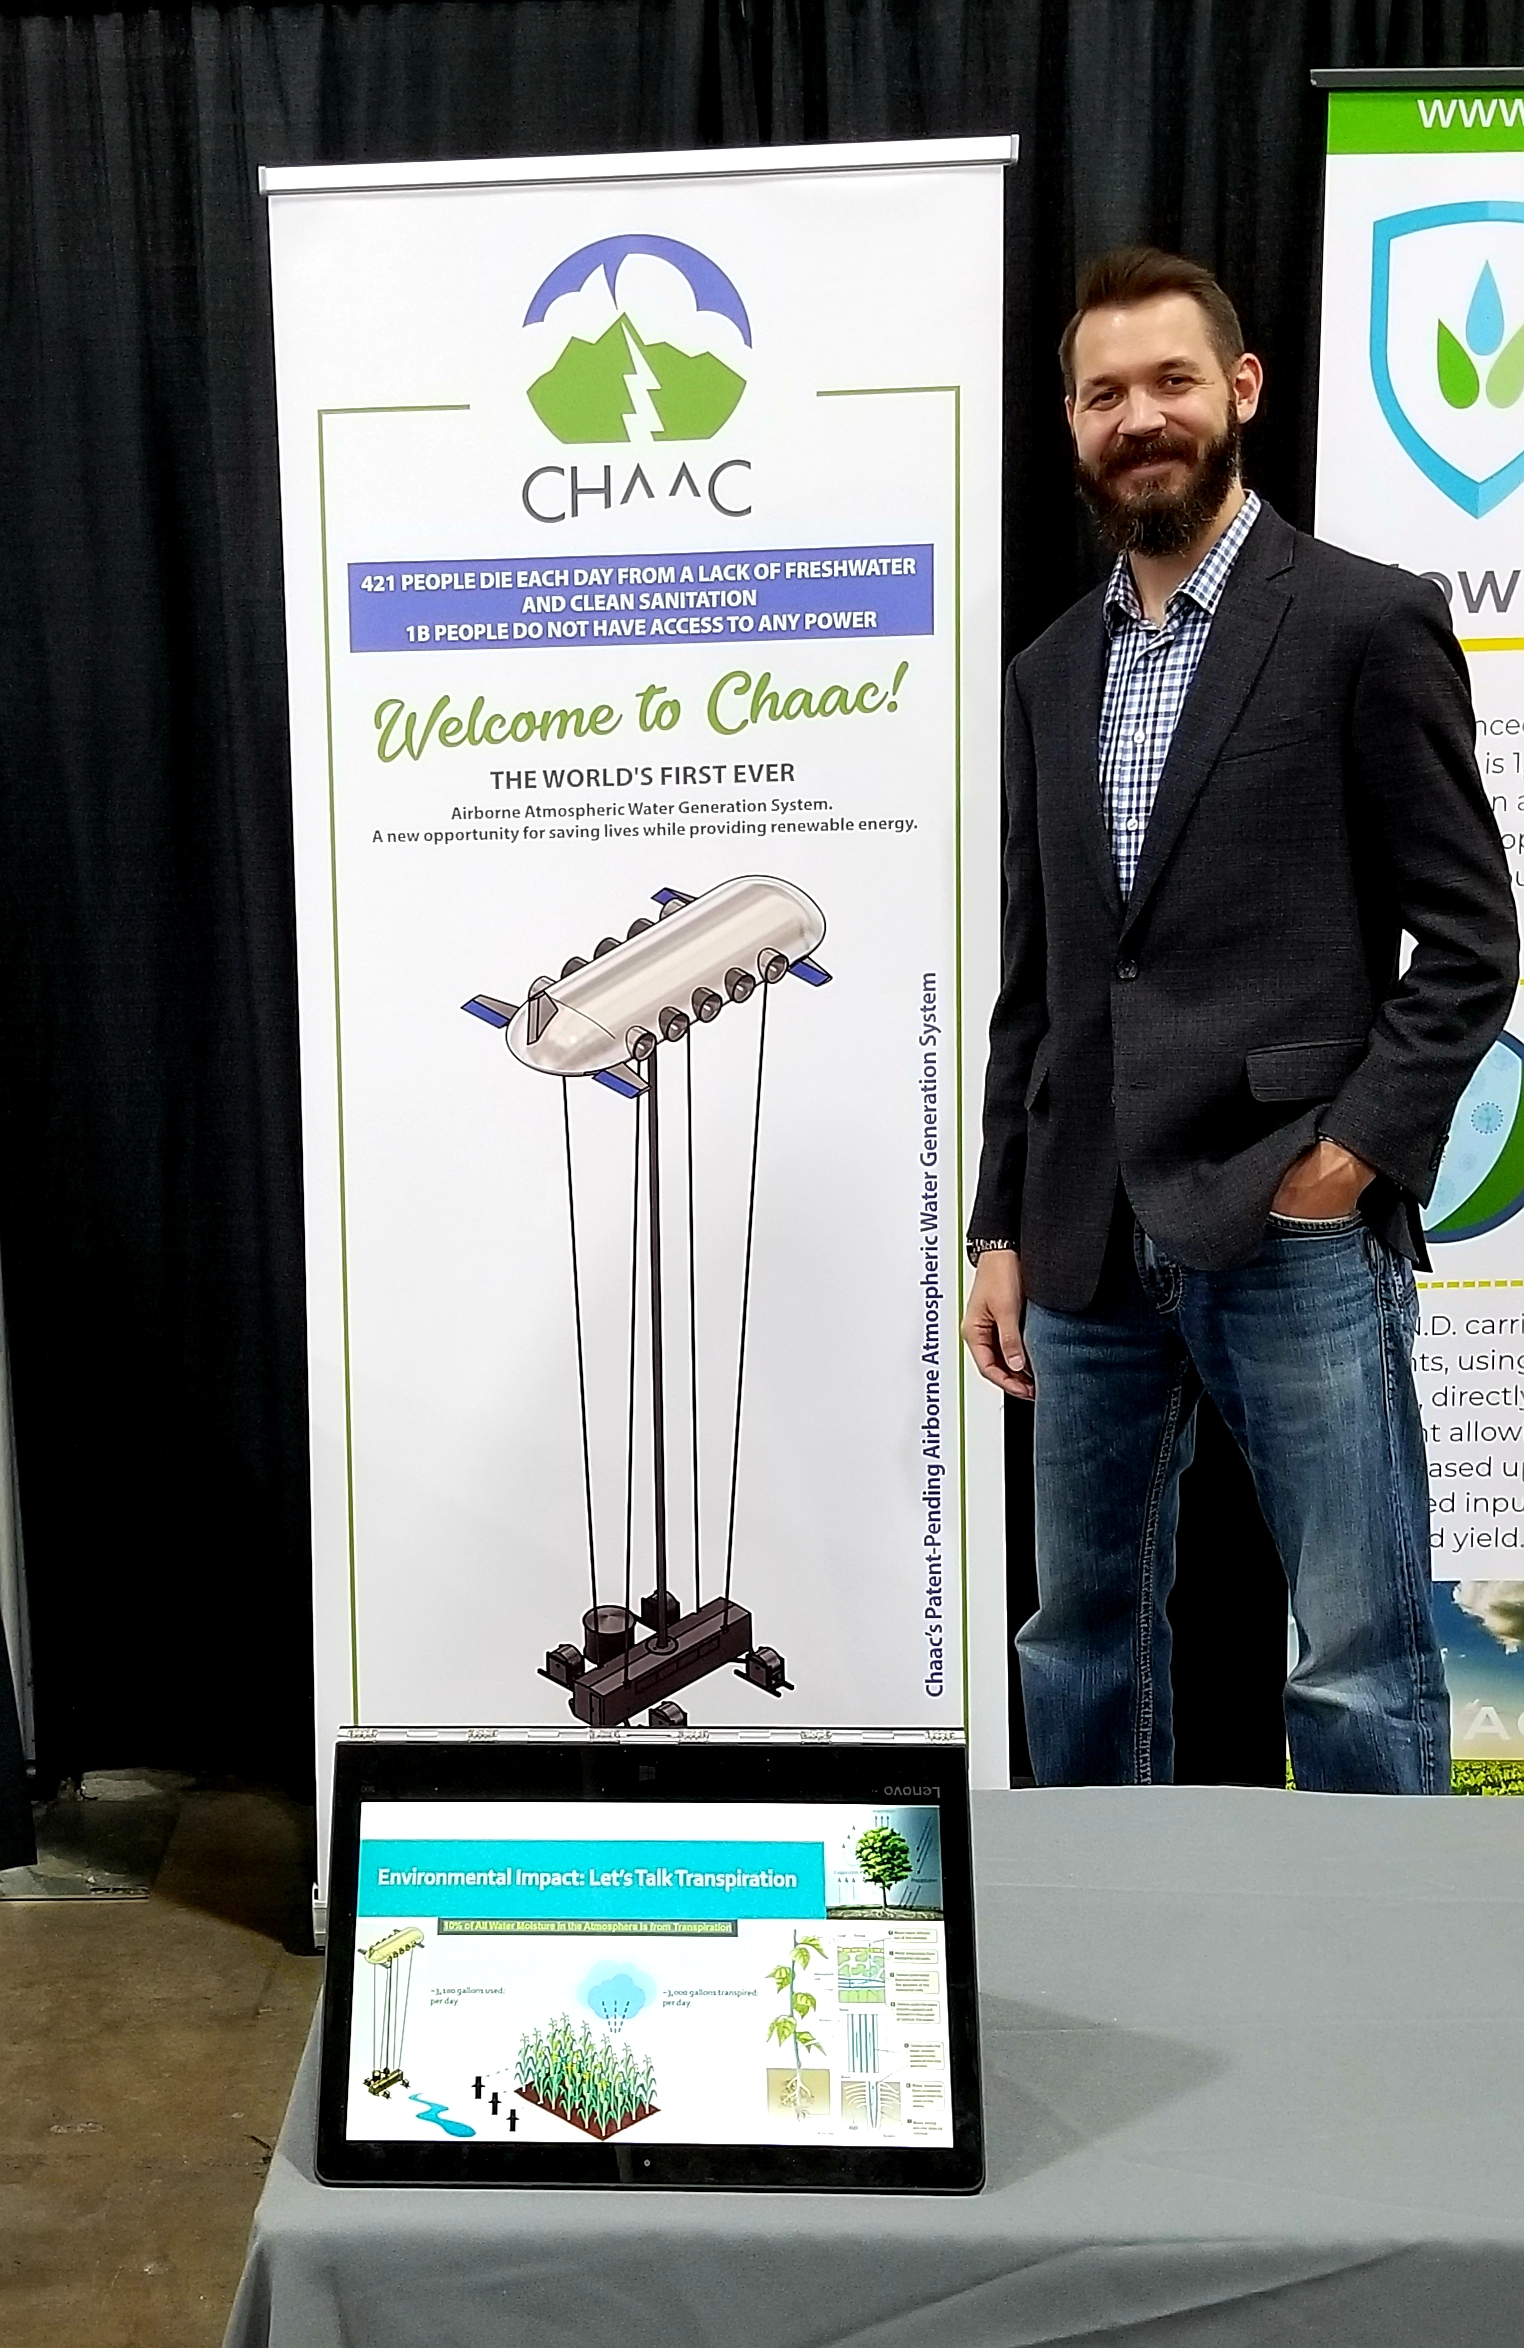 cHAAC'S AIRBORNE AWG SYSTEM - Chaac's Co-Founder & CEO at the 68th United Nations Civil Society Summit held in Salt Lake City, UT - the home of Chaac. We're on a mission of building the world's first Airborne Atmospheric Water Generation System that will increase freshwater accessibility across the globe, advance a new renewable energy solution, and empower economies to thrive via our innovative and self-powering clean technologies.